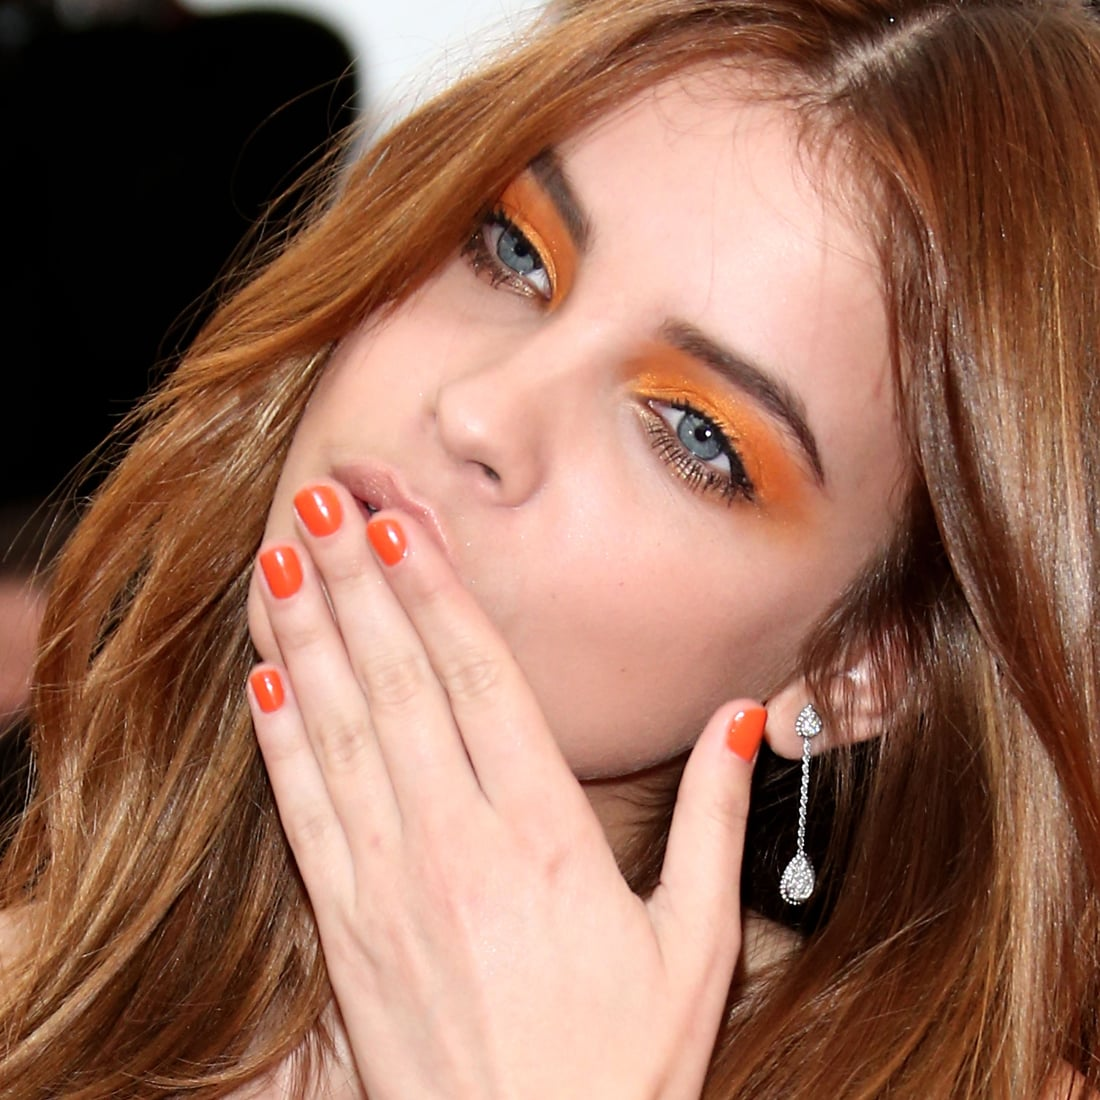 Model Barbara Palvin matched her highlighter orange shadow to her tangerine manicure.